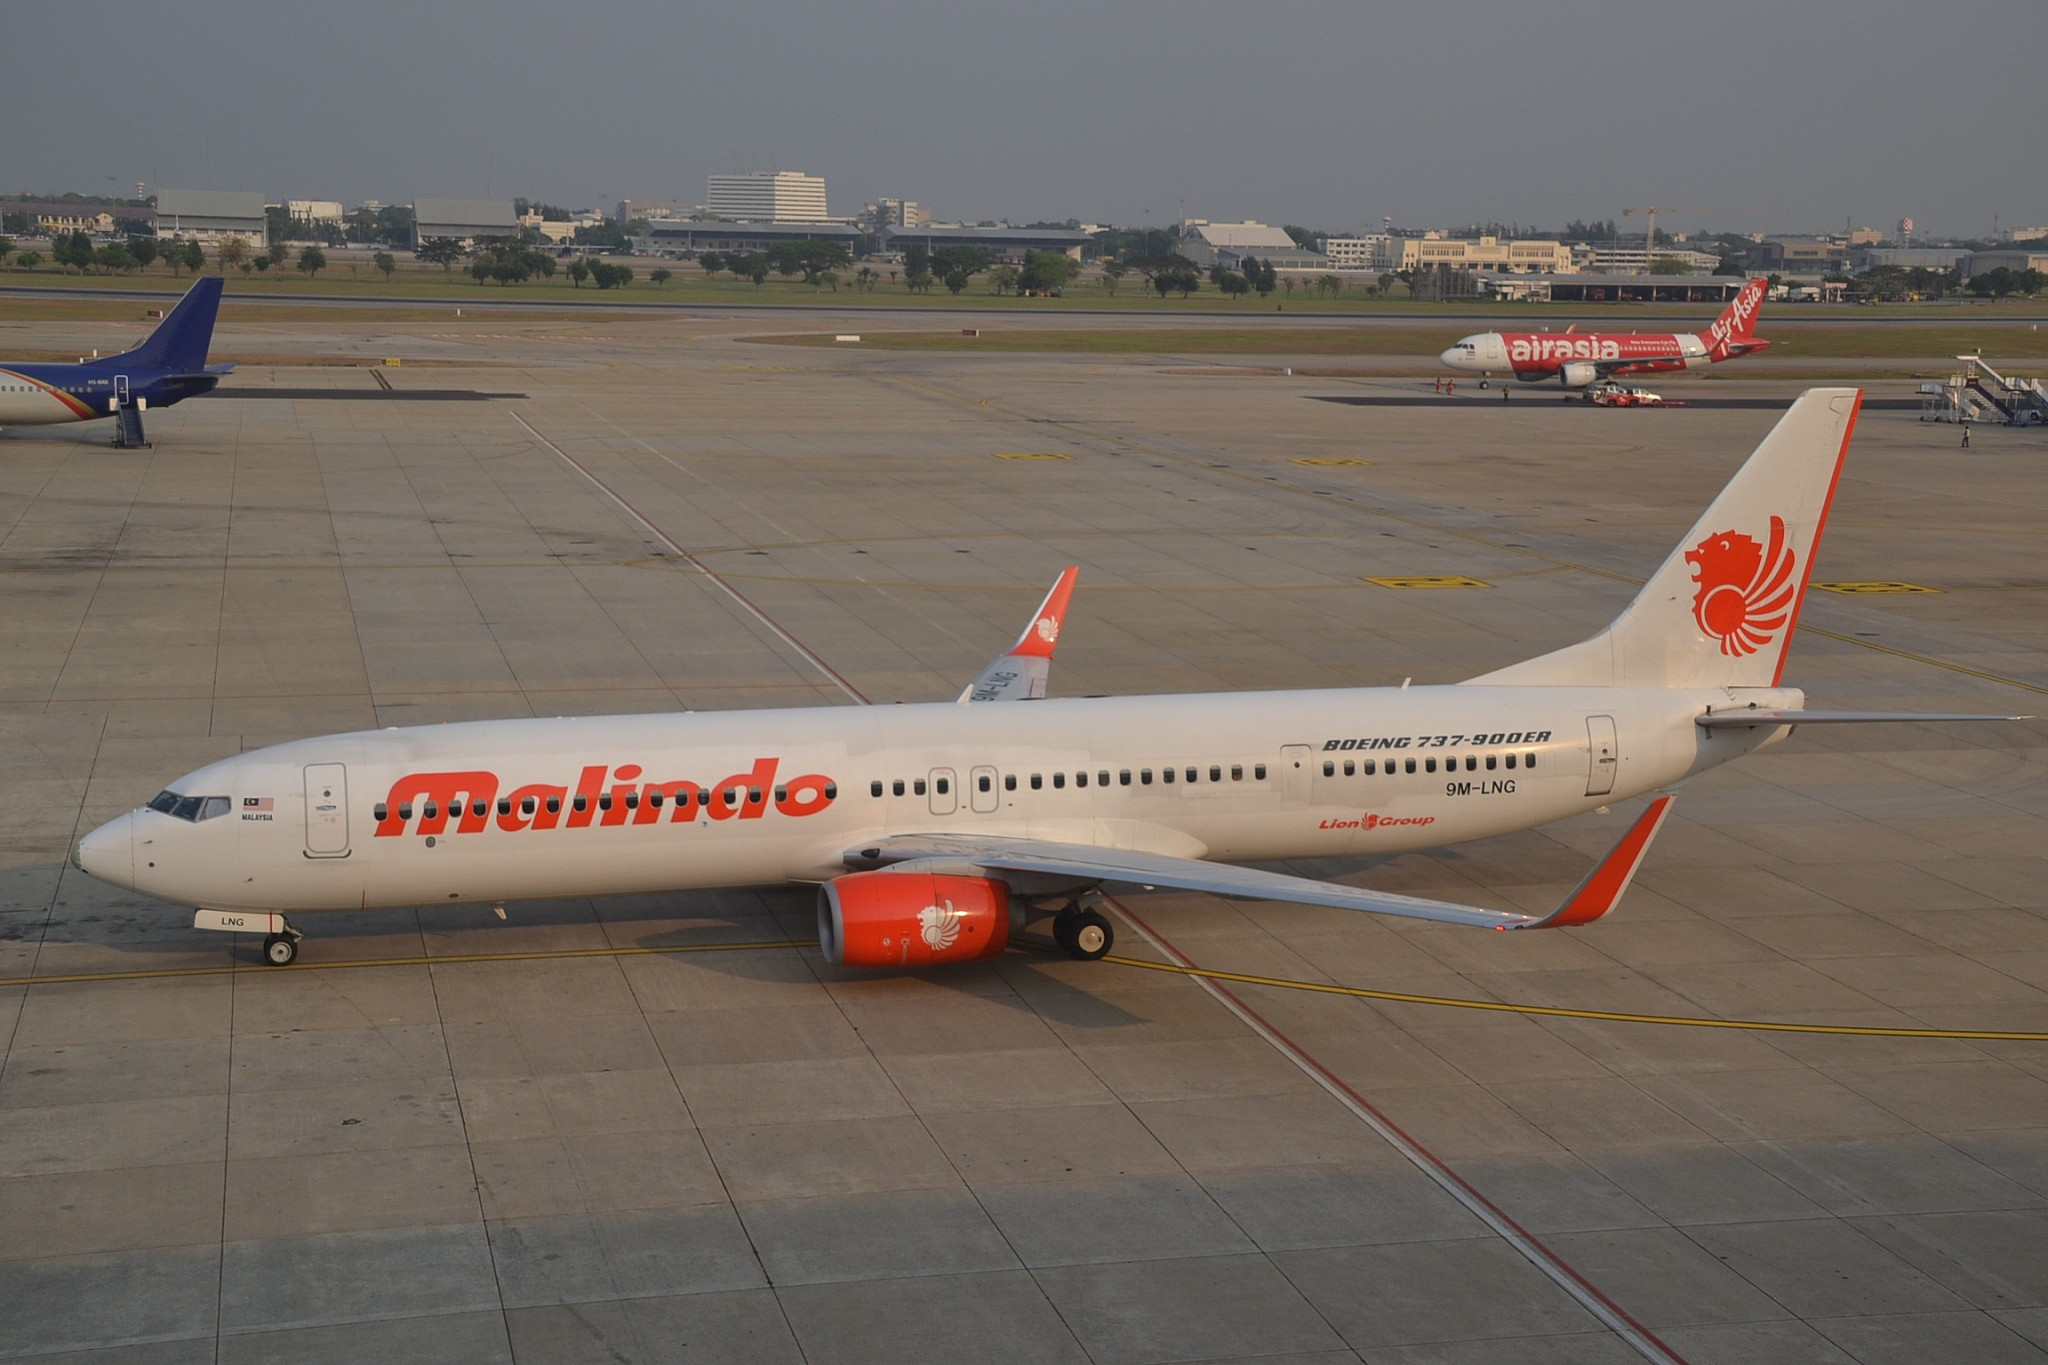 Naked passenger nabbed on flight from KL to Dhaka